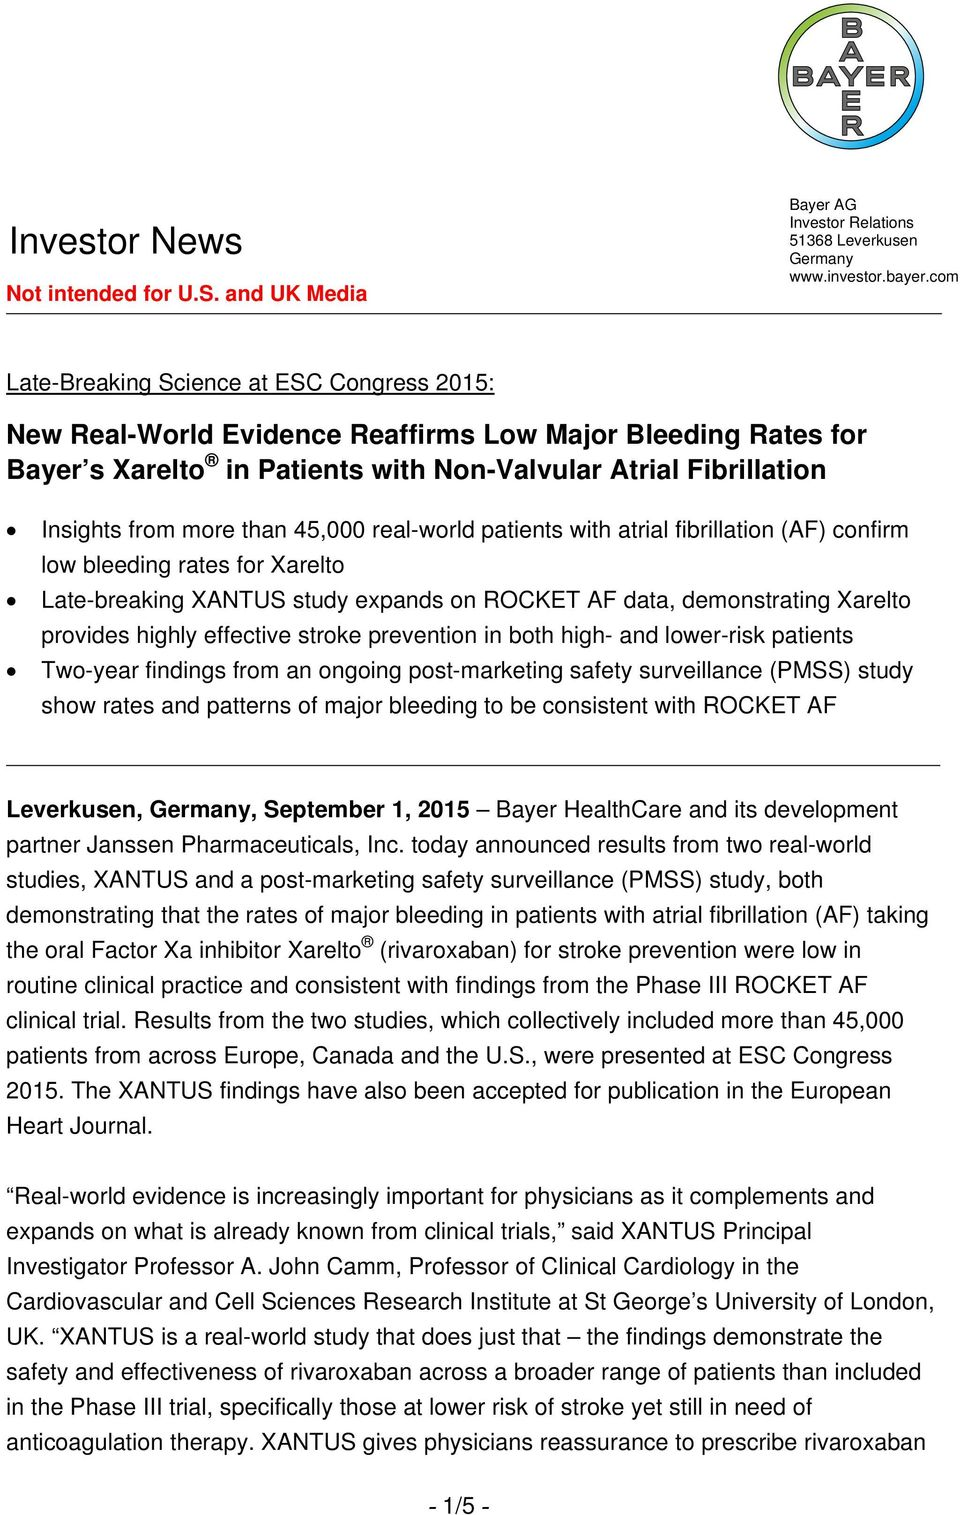 than 45,000 real-world patients with atrial fibrillation (AF) confirm low bleeding rates for Xarelto Late-breaking XANTUS study expands on ROCKET AF data, demonstrating Xarelto provides highly